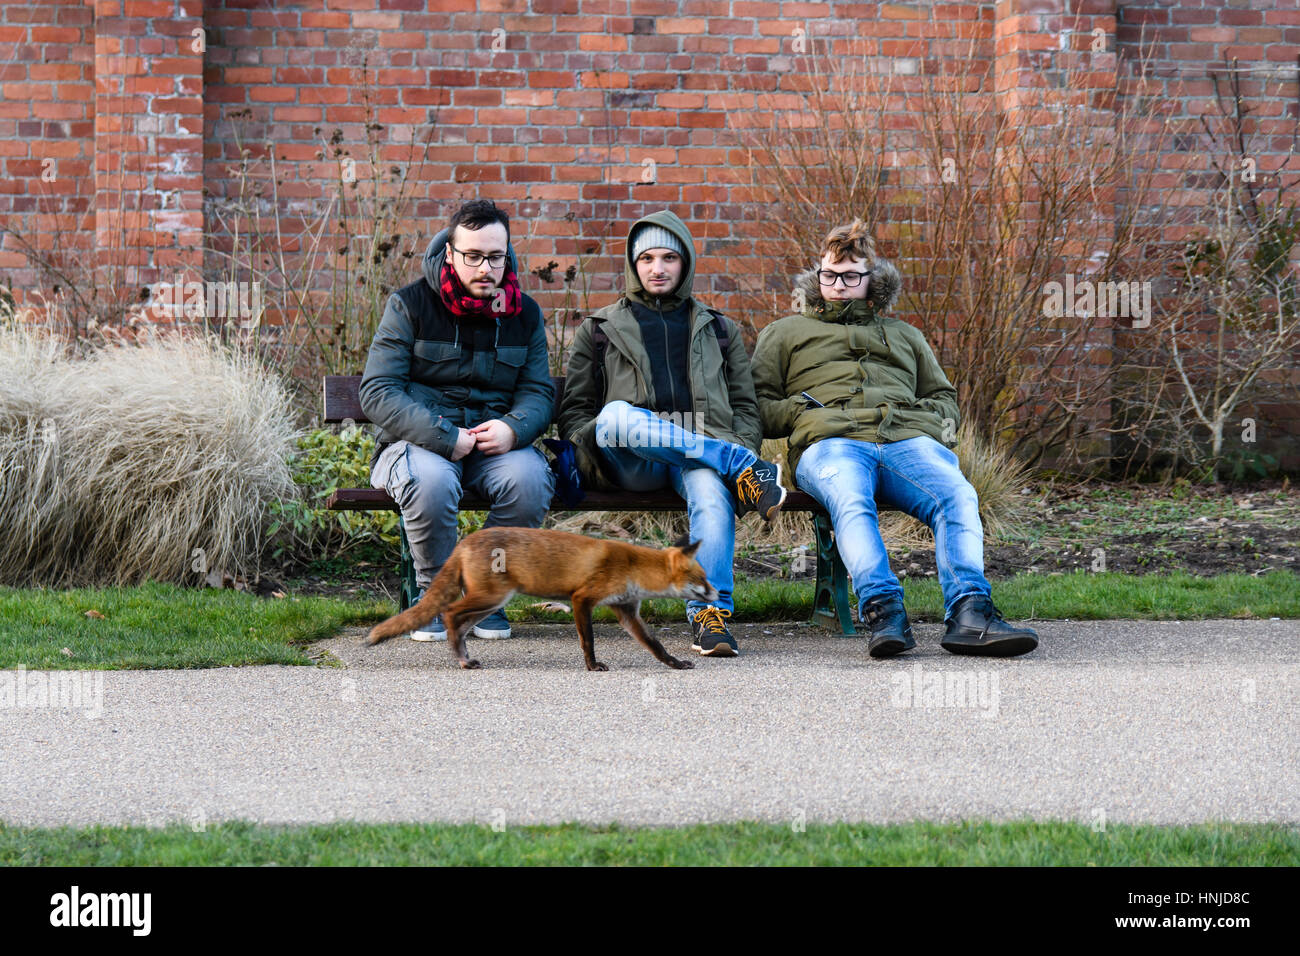 Lame fox (Vulpes vulpes) approaching people in daylight. Hungry animal seeks food from people during afternoon, - Stock Image